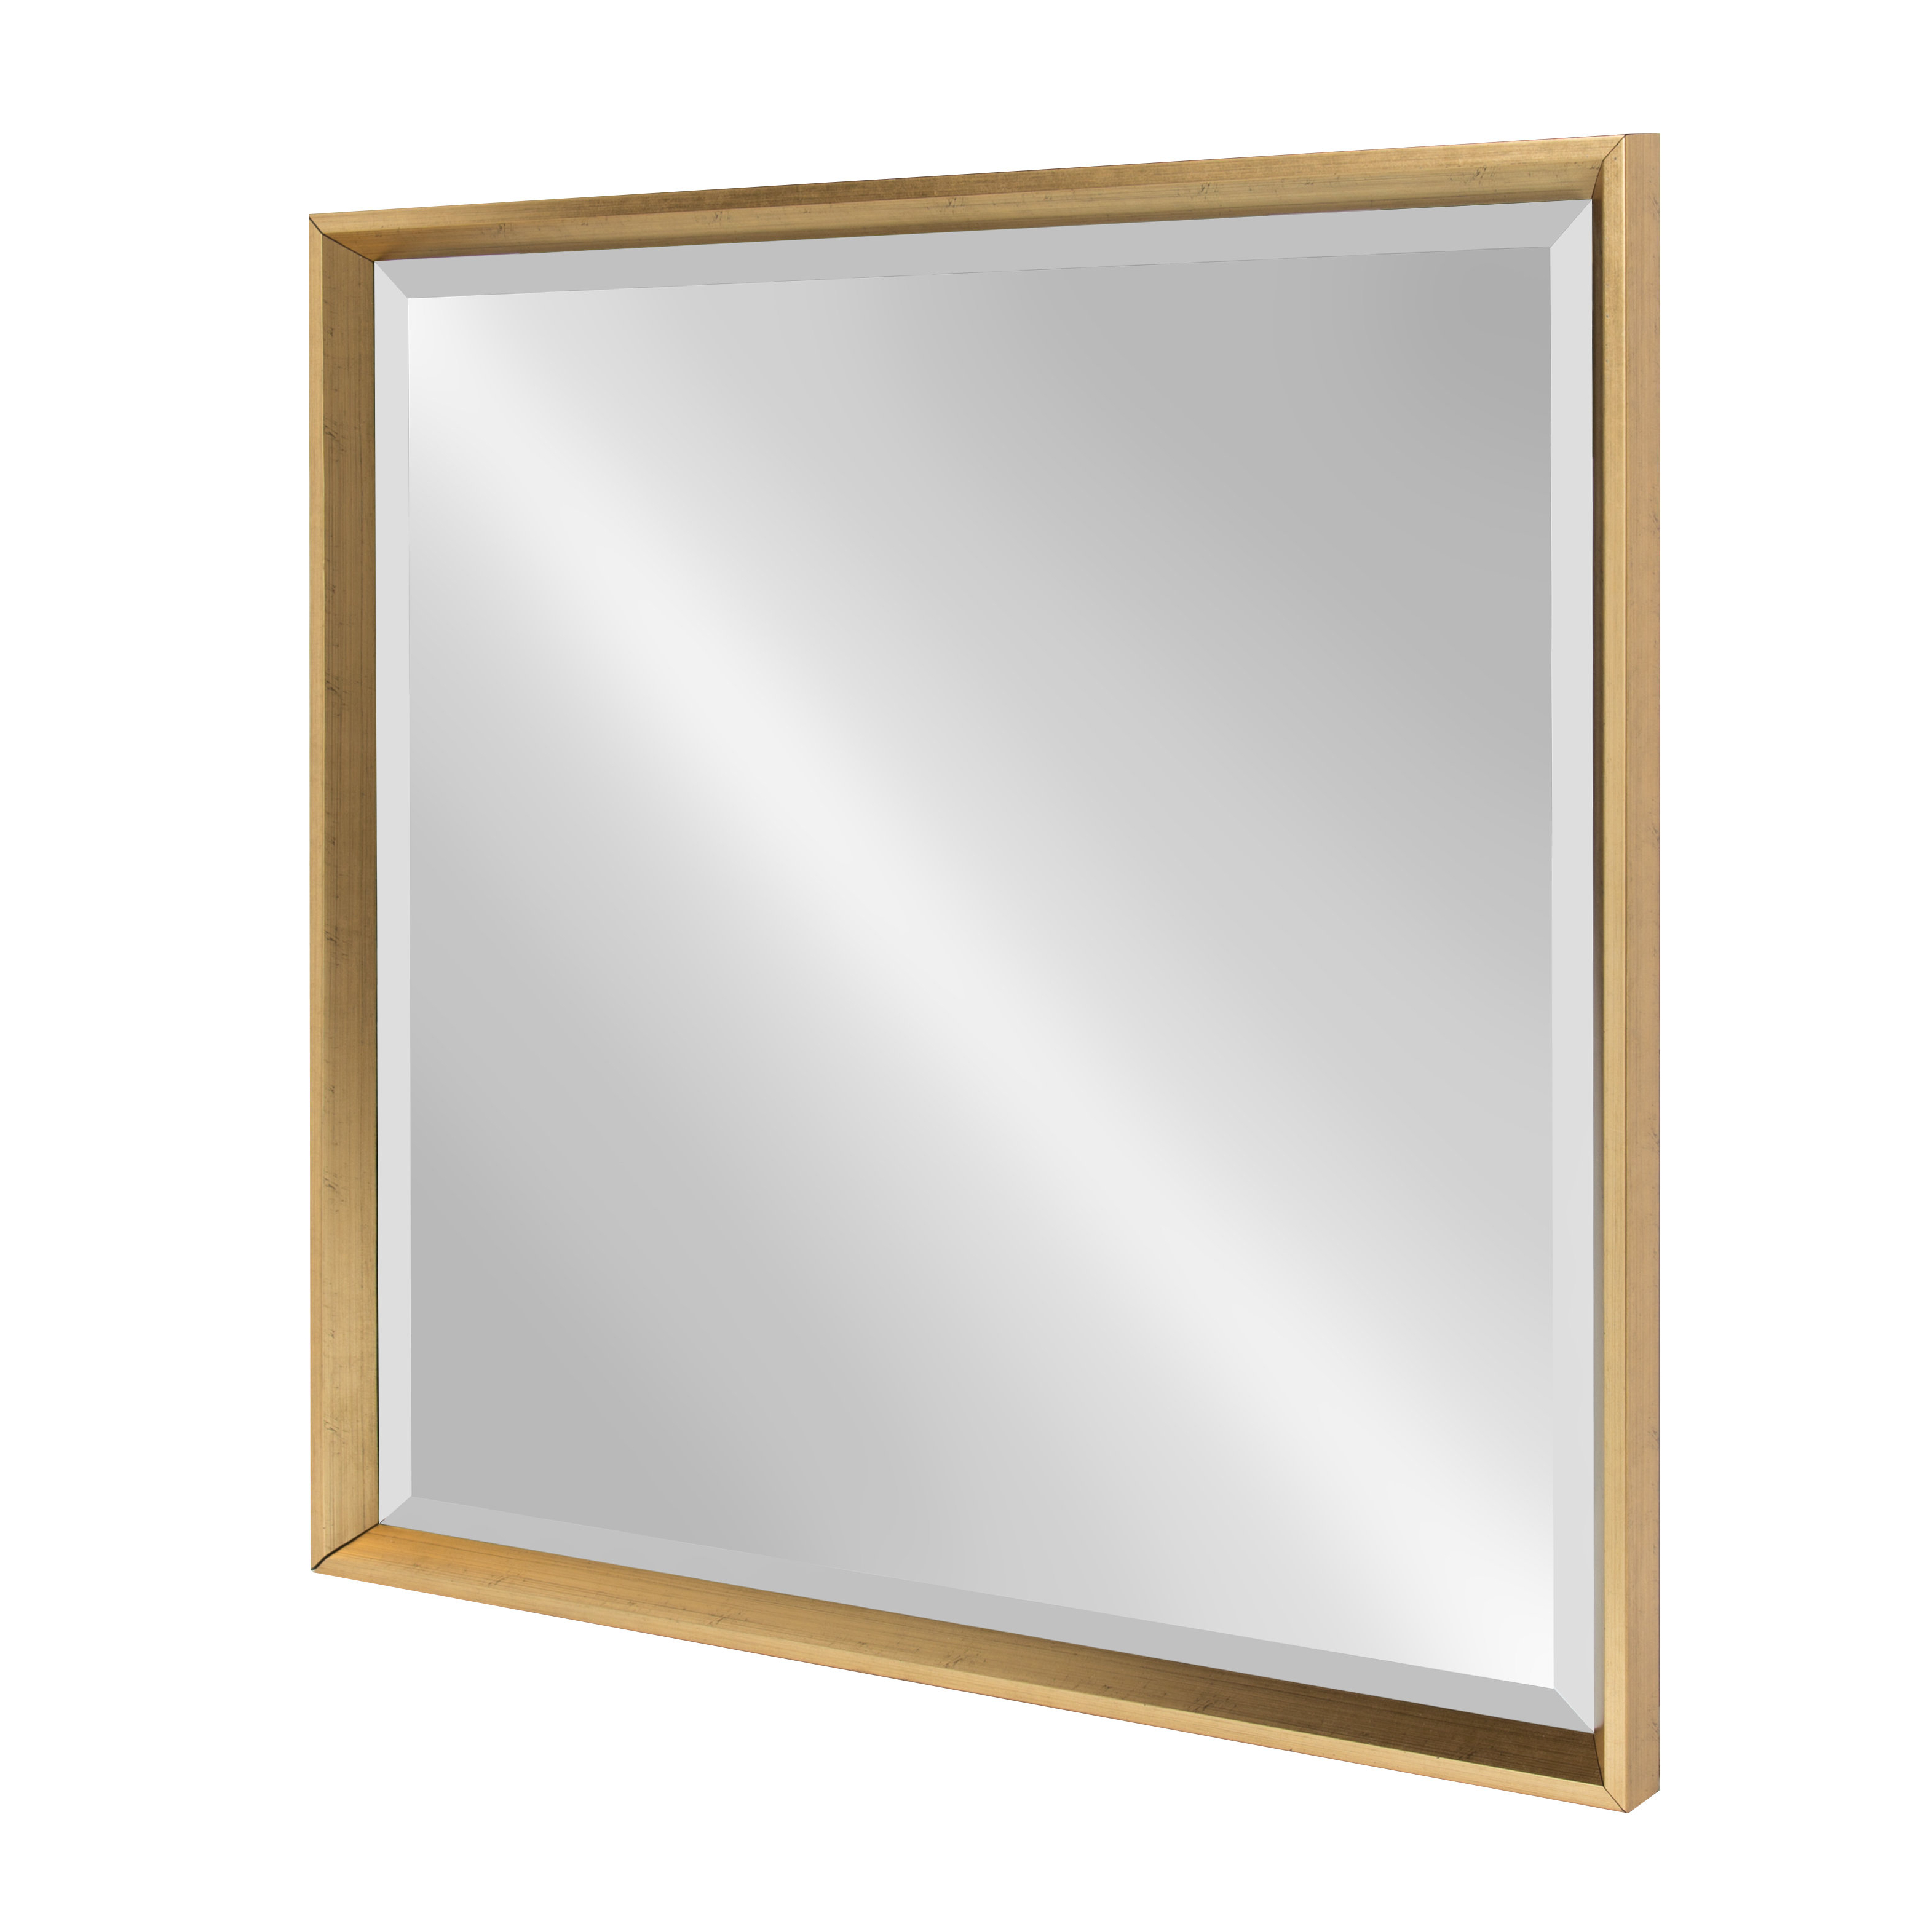 Well Known Sundown Framed Glam Beveled Accent Mirror For Glam Beveled Accent Mirrors (Gallery 7 of 20)